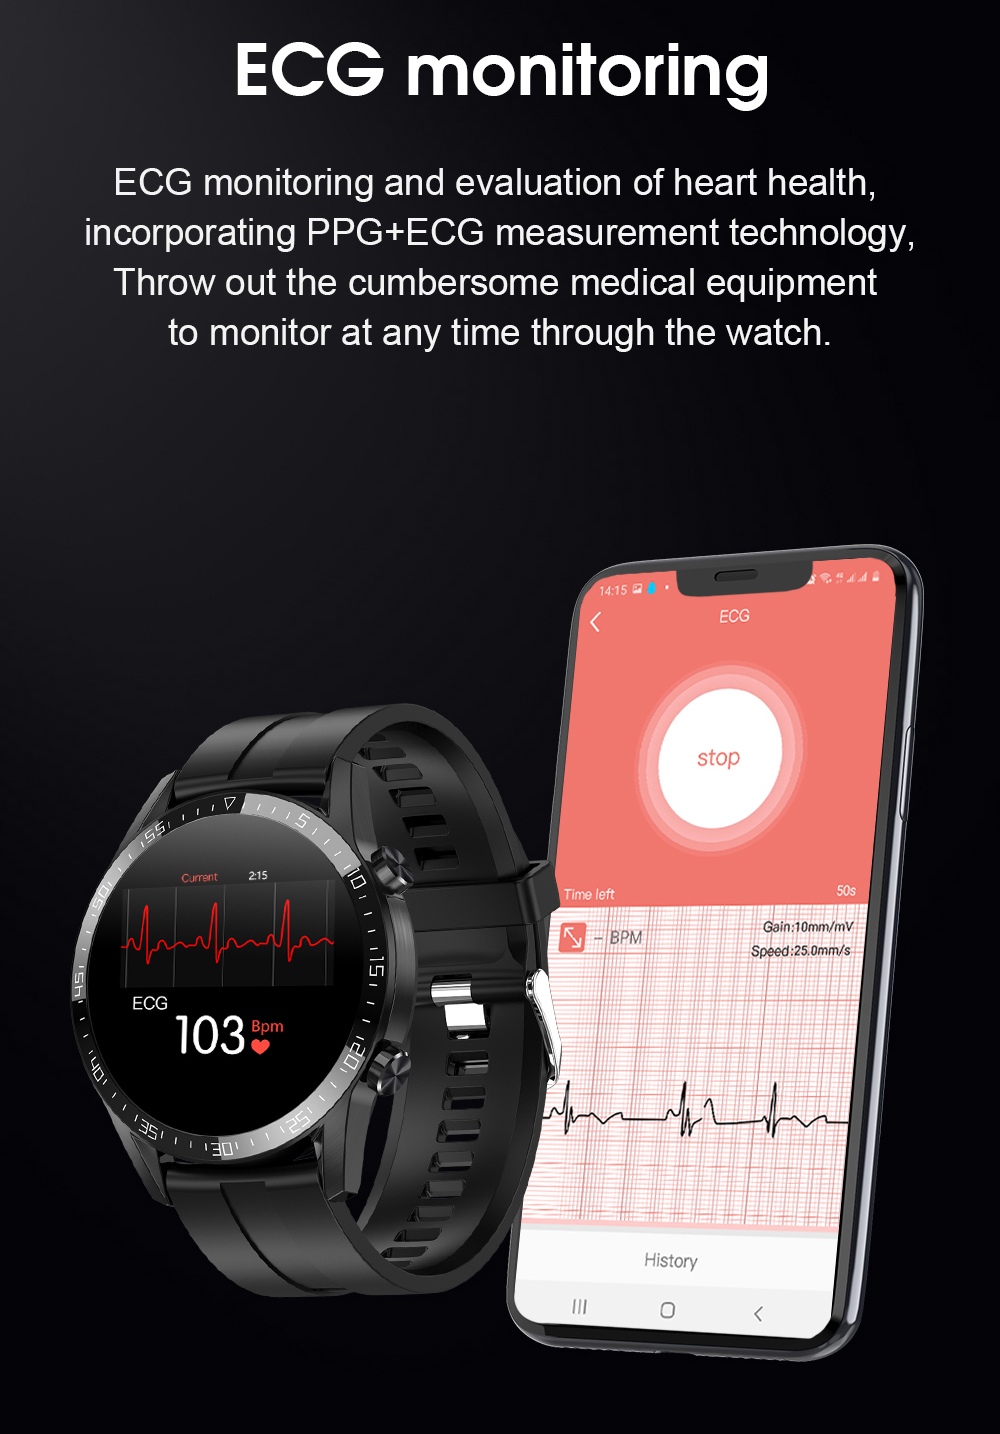 H8b338f38105f4ce6ad5a0aa4b17f797fU Timewolf IP68 Smart Watch Men Android 2020 Full Touch Smartwatch Men Women Smart Watch For Huawei Xiaomi Apple IOS Android Phone